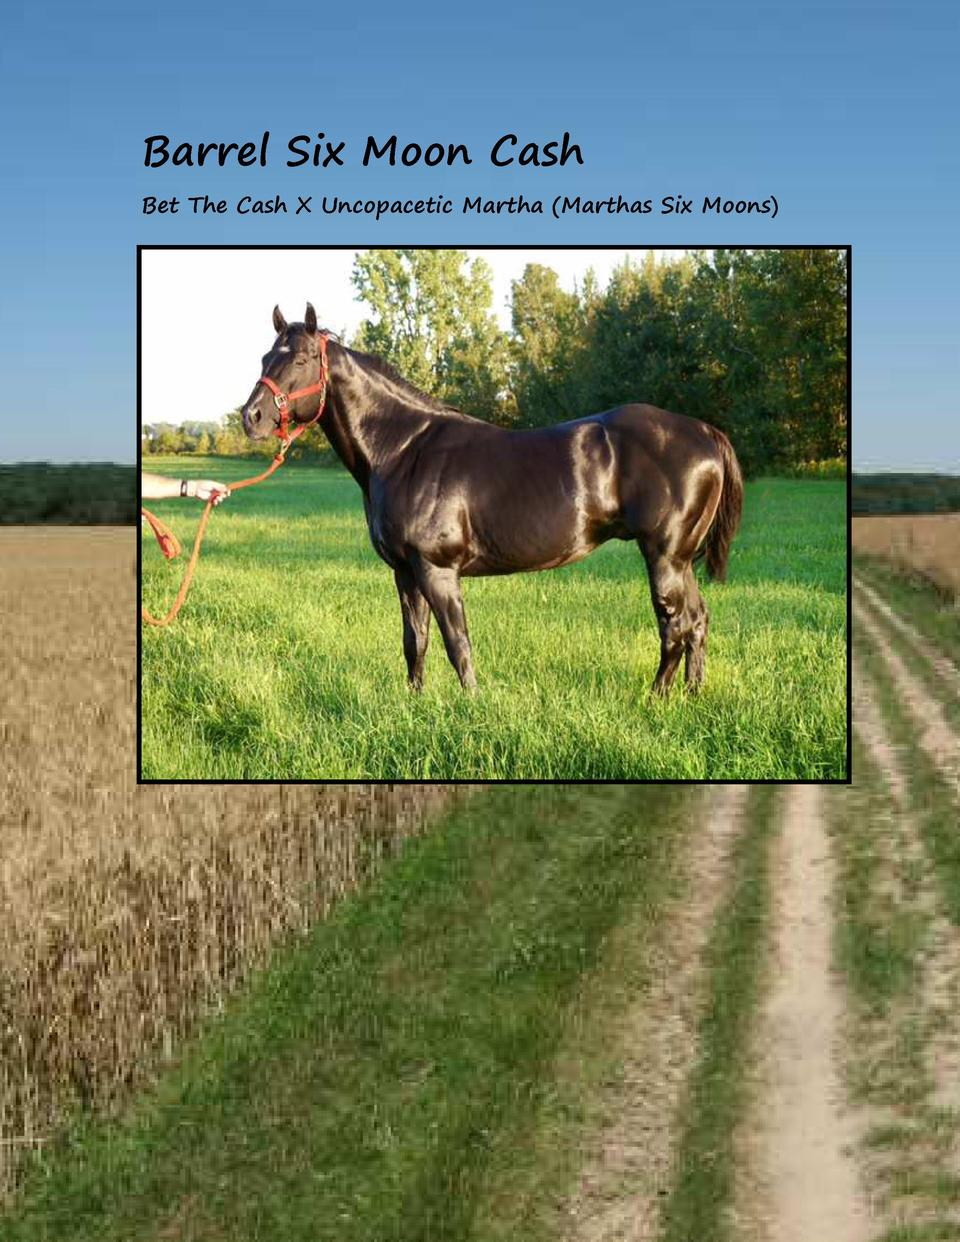 Barrel Six Moon Cash Bet The Cash X Uncopacetic Martha  Marthas Six Moons